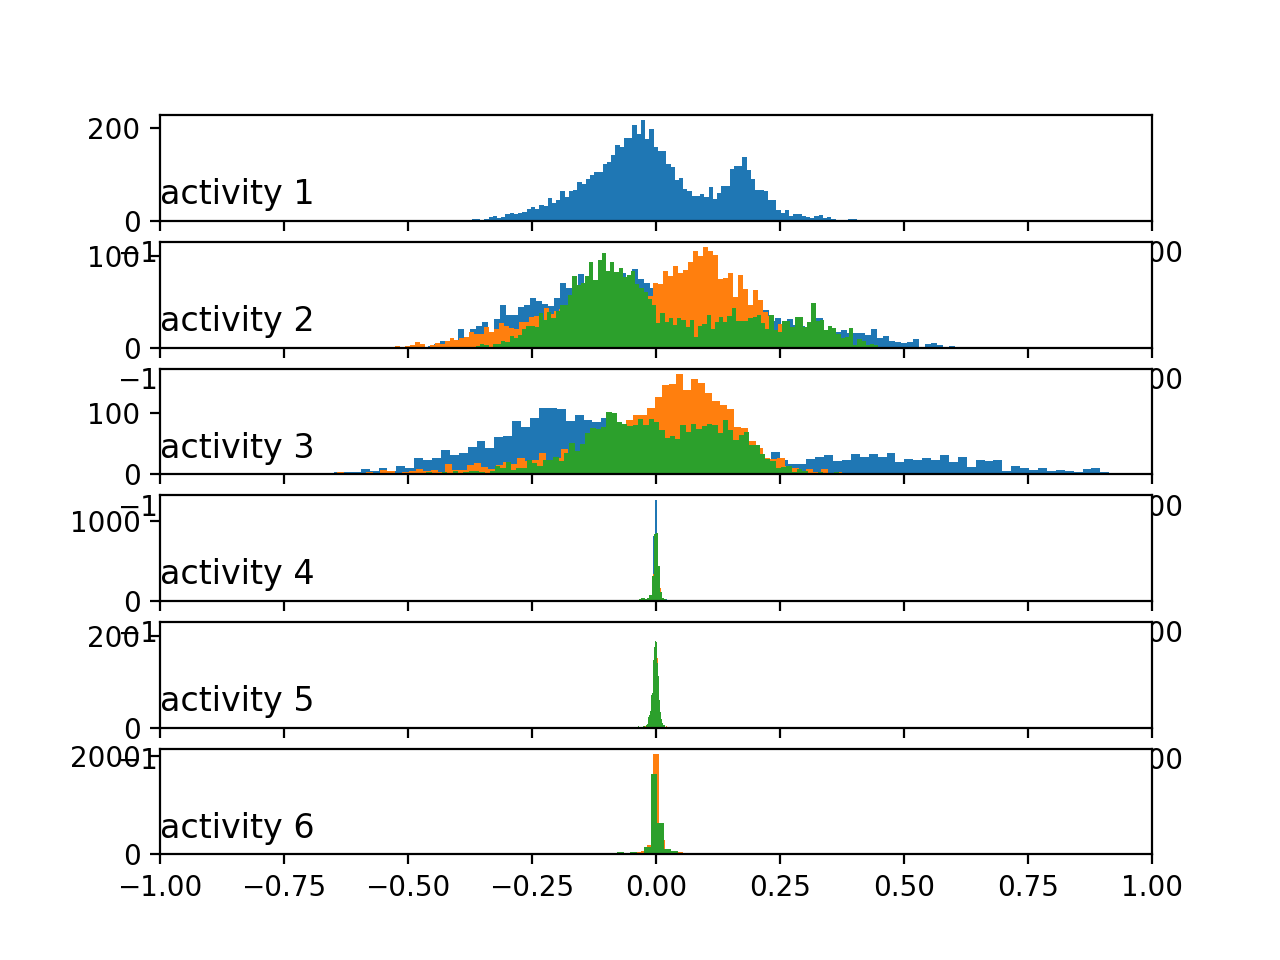 Histograms of the body acceleration data by activity